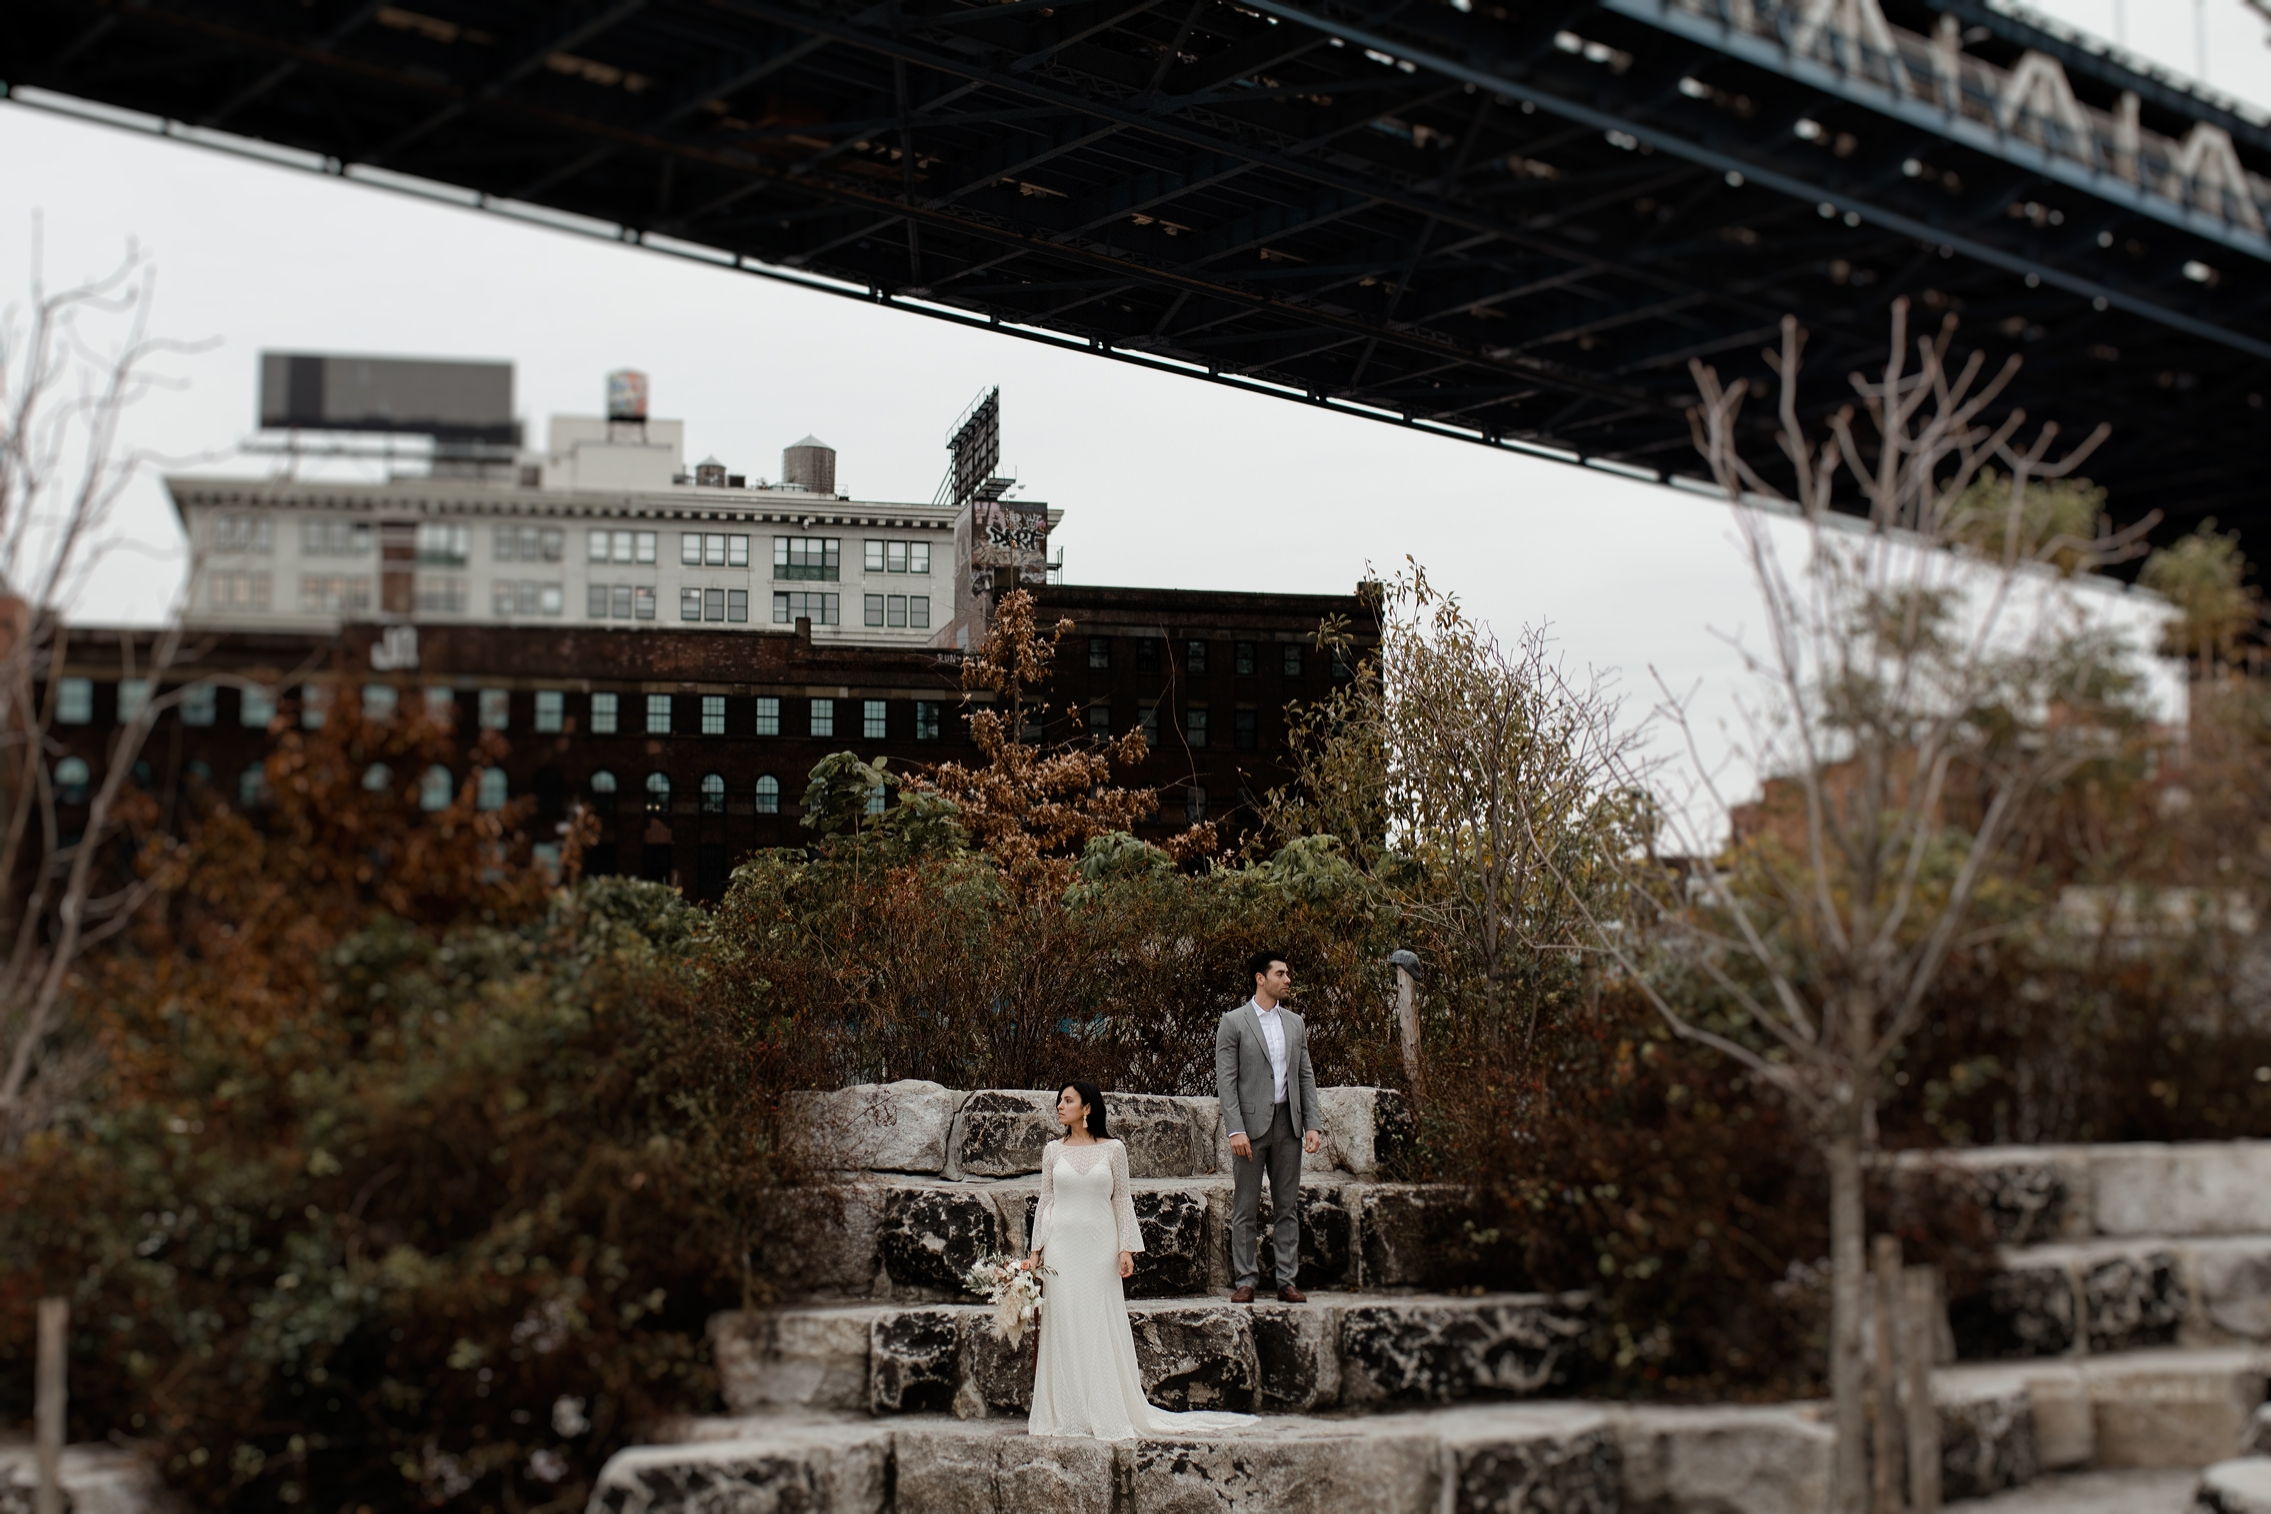 A creative elopement under the Manhattan Bridge in DUMBO New York